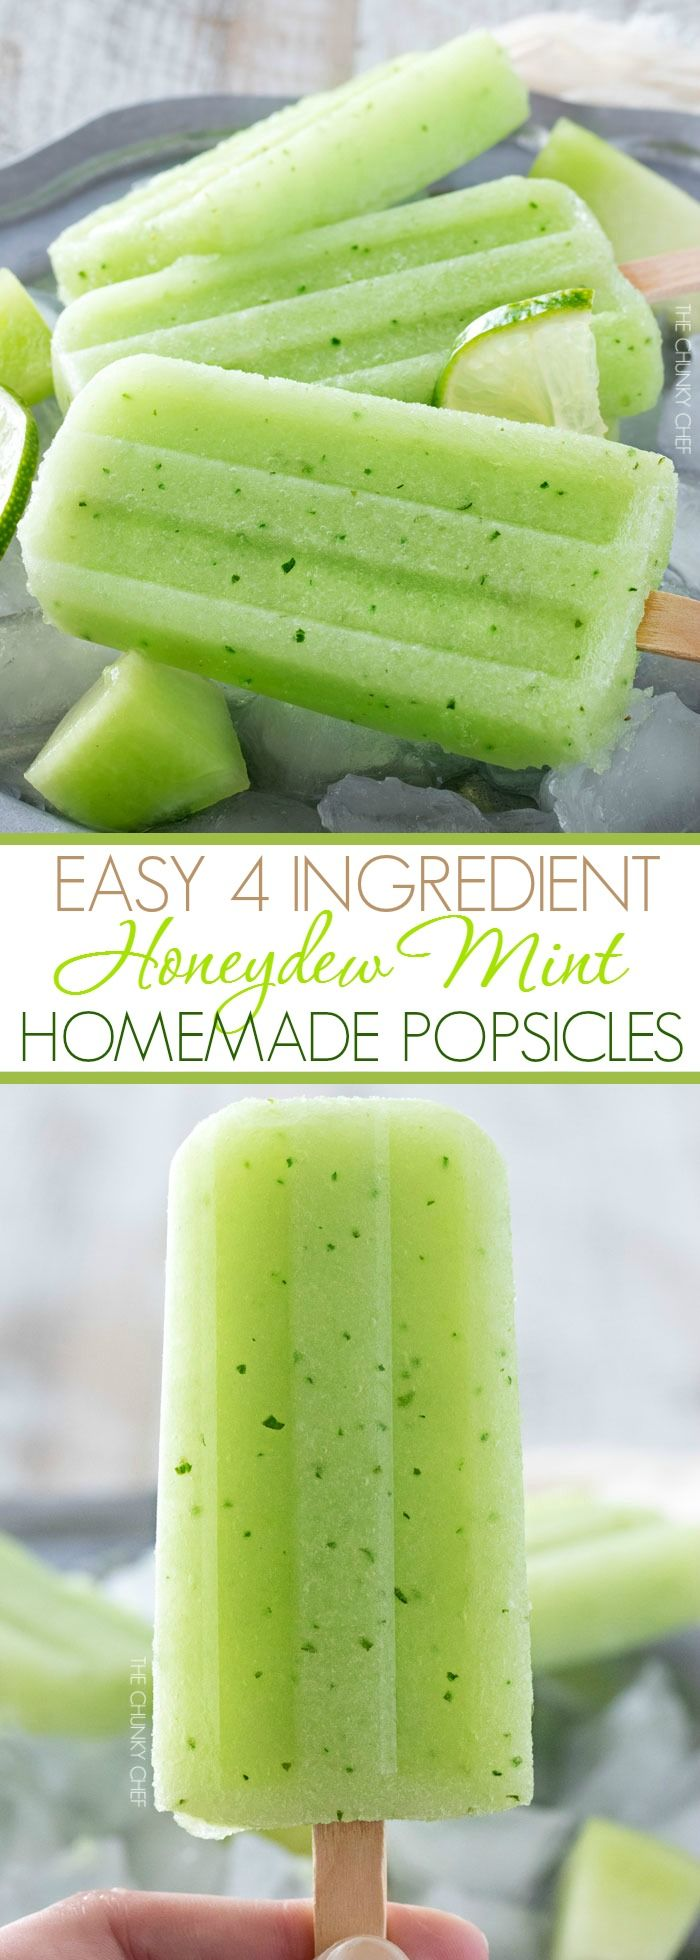 Honeydew Mint Homemade Popsicles | The refreshing taste of sweet honeydew melon and fresh mint will make these easy 4 ingredient homemade popsicles an instant favorite!